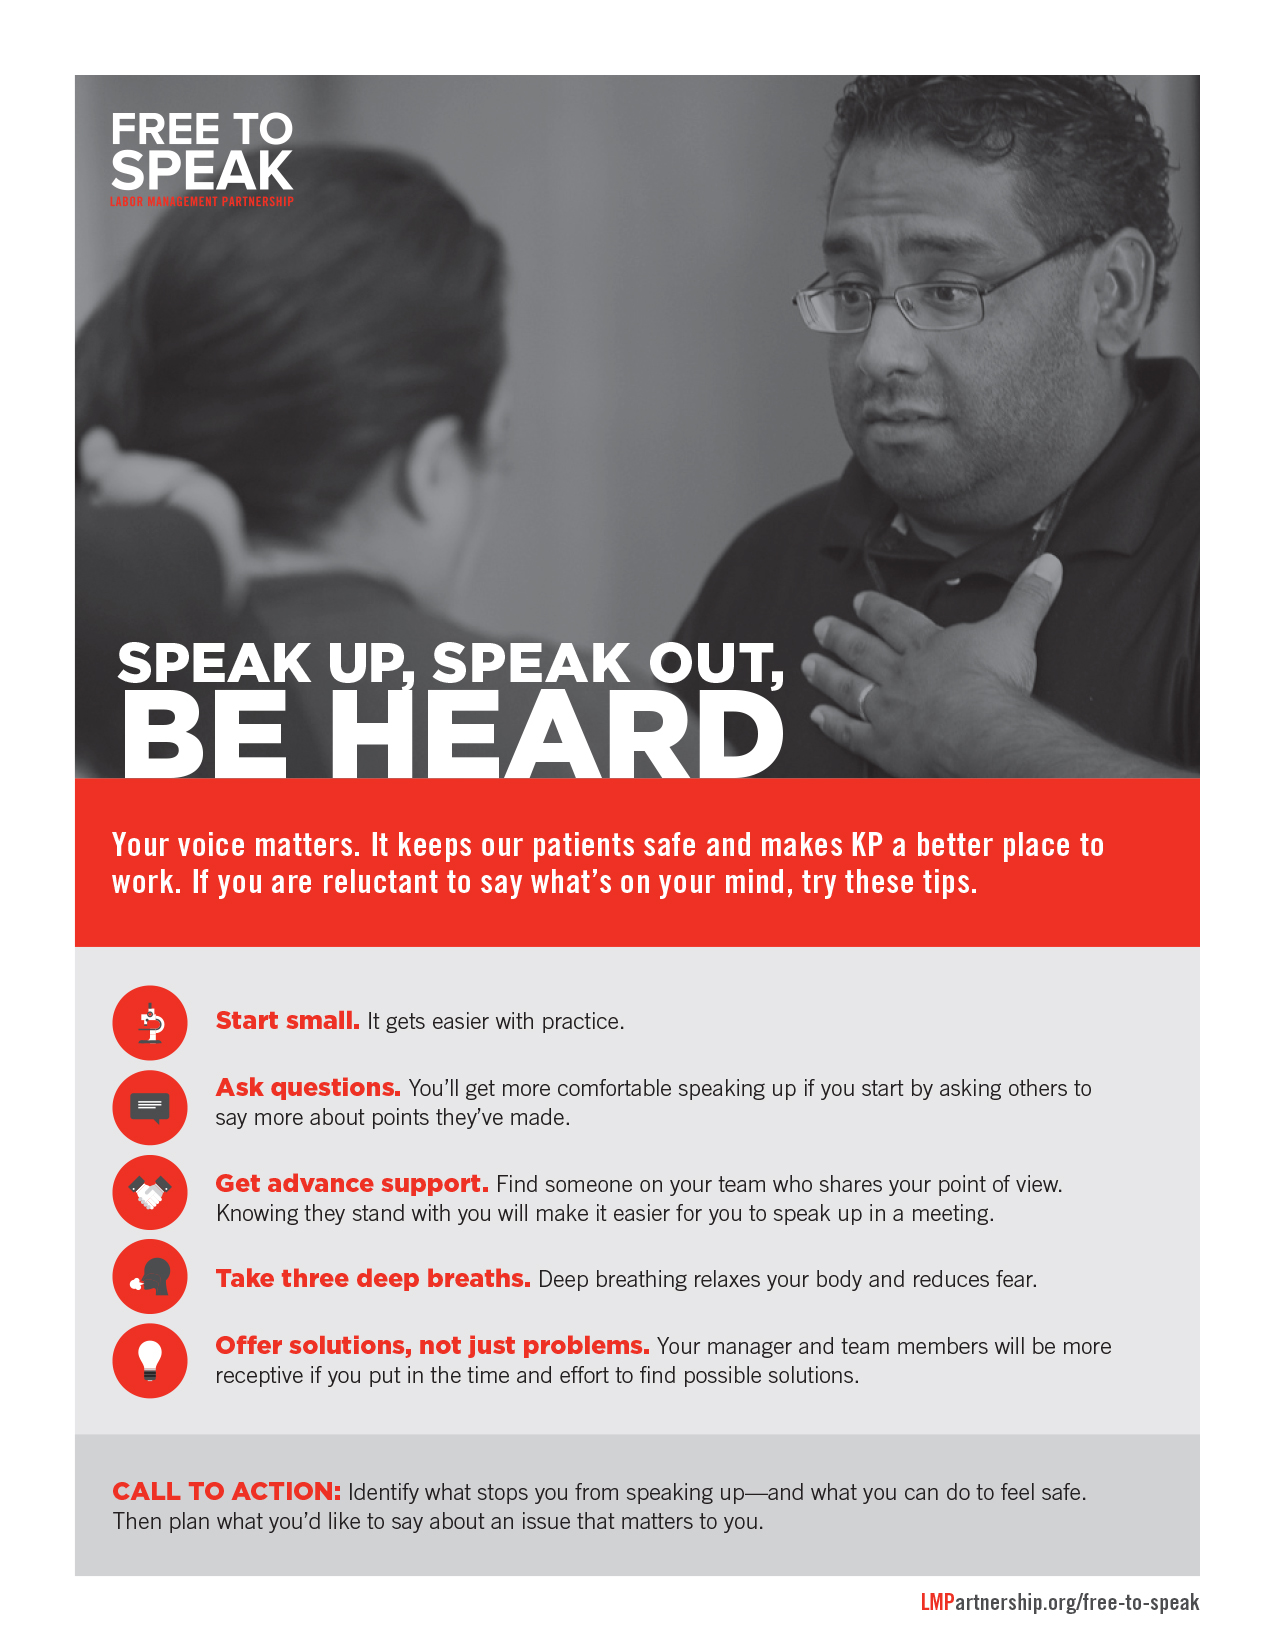 Free to Speak: Speak Out, Speak Up, Be Heard